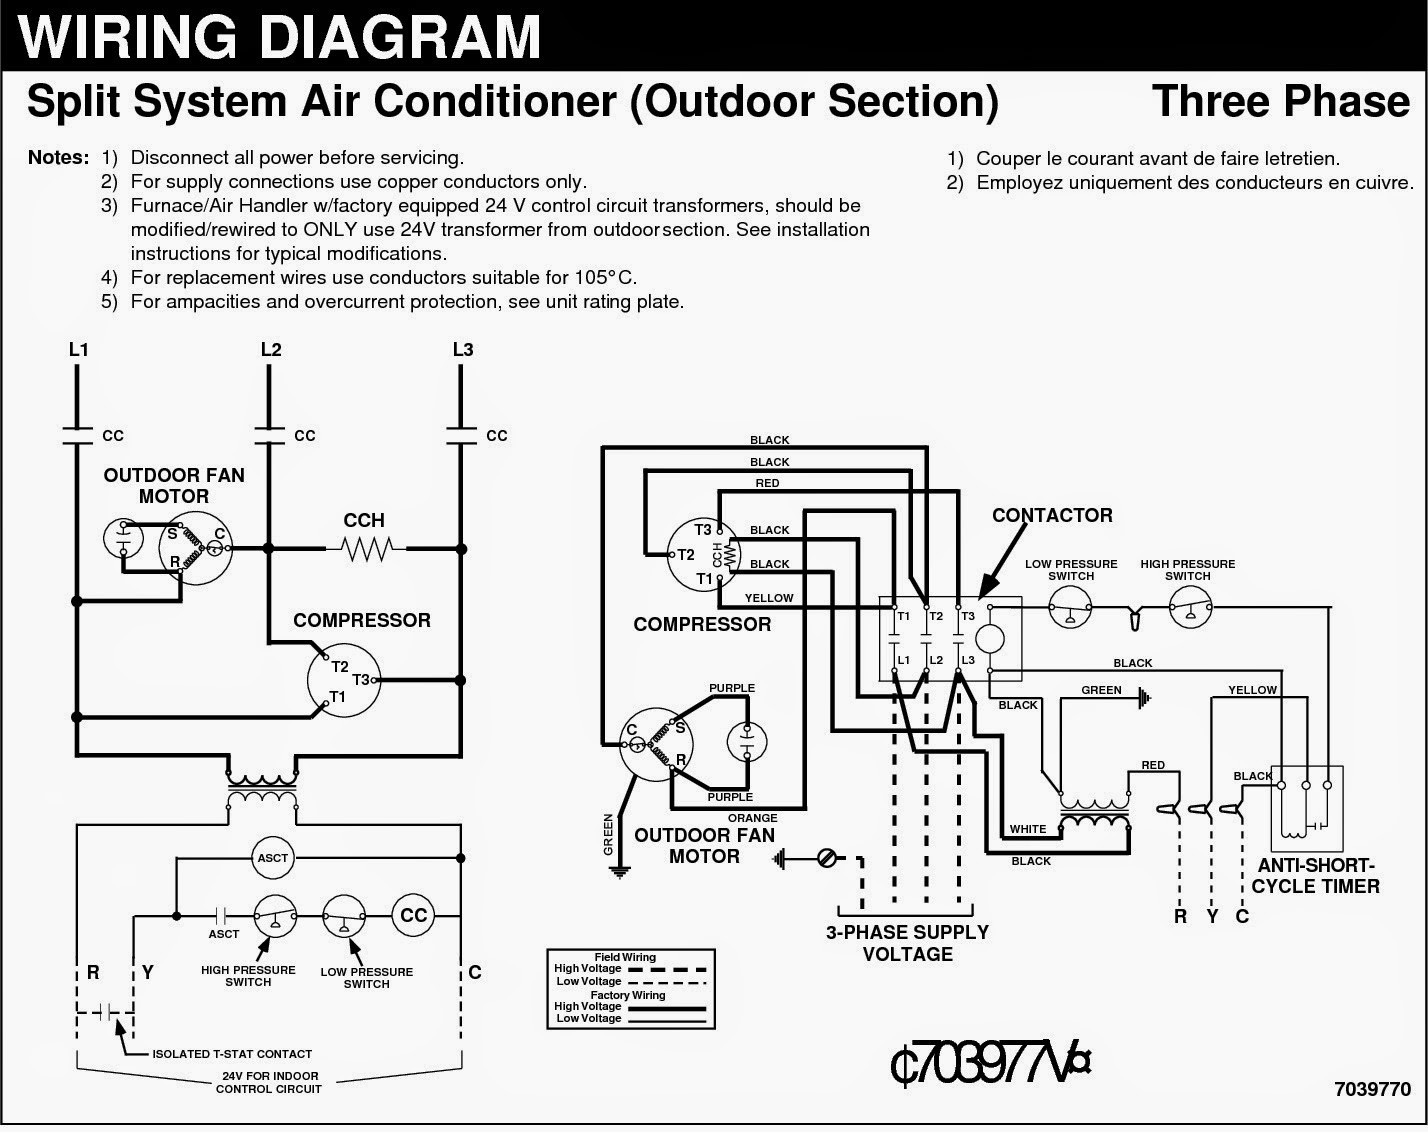 3 phase convection oven wiring diagram wiring diagram blodgett convection oven wiring diagram 3 phase convection [ 1428 x 1132 Pixel ]